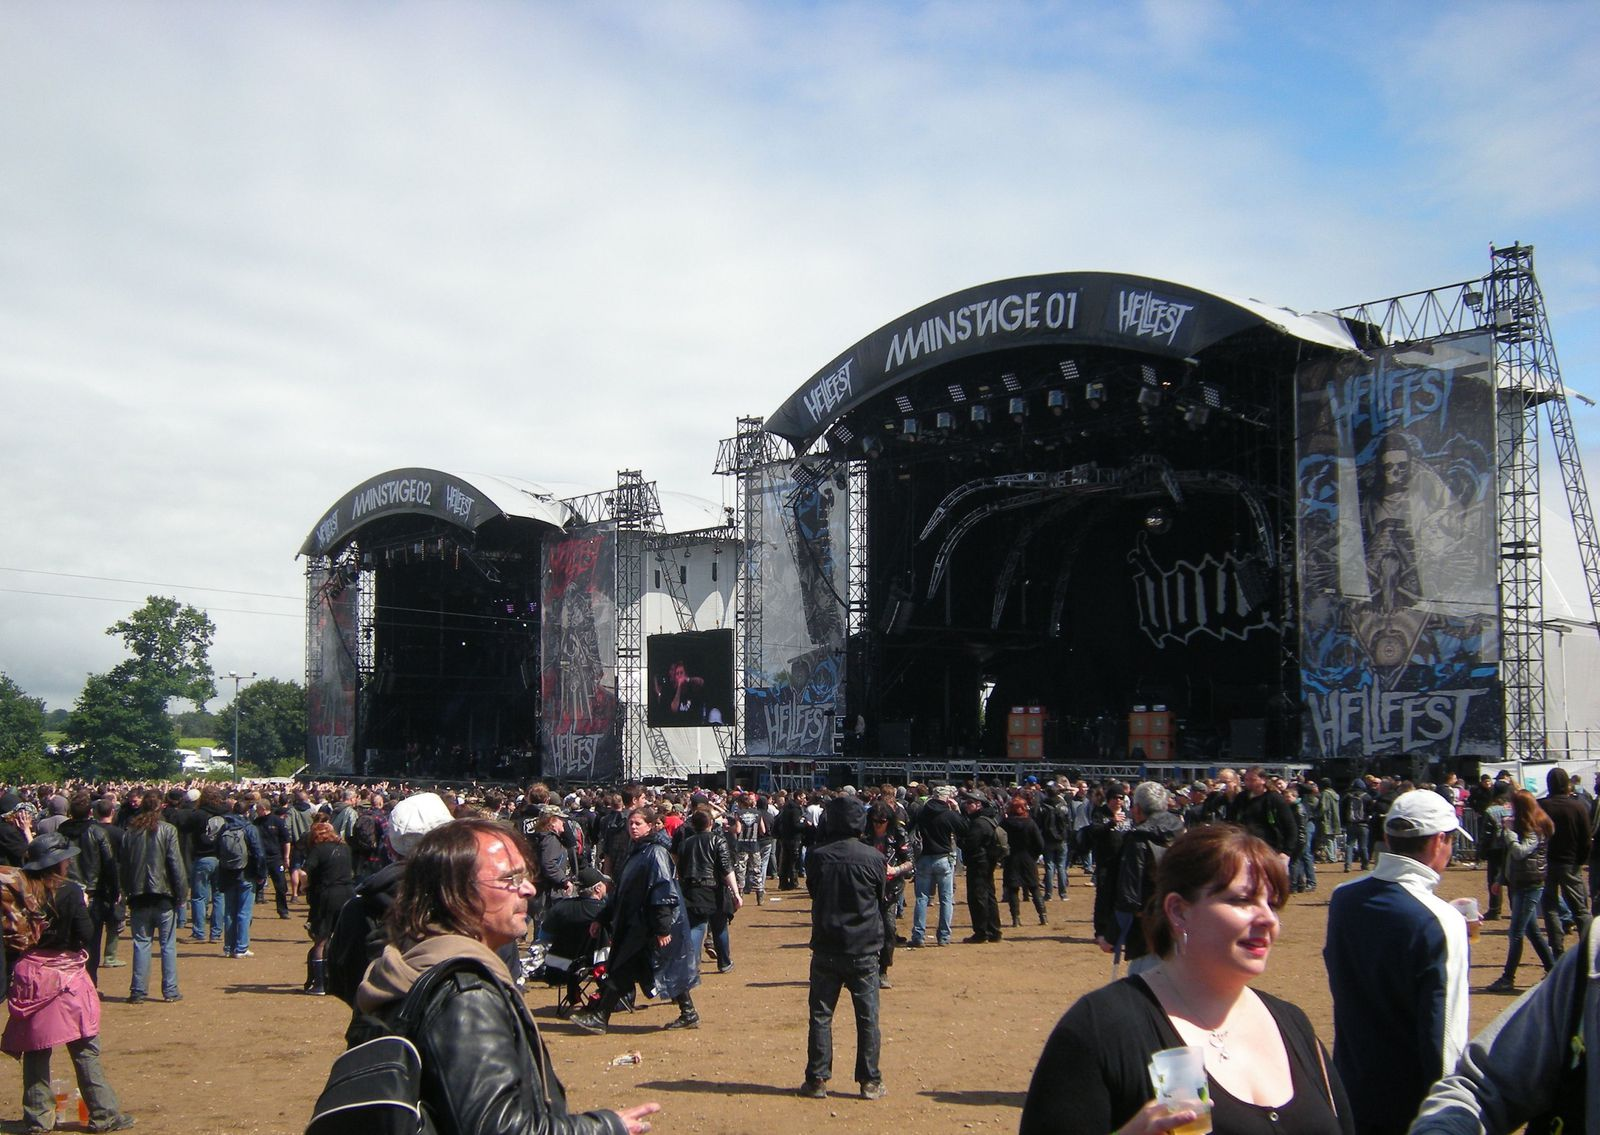 Hellfest 2013, you're bewitched